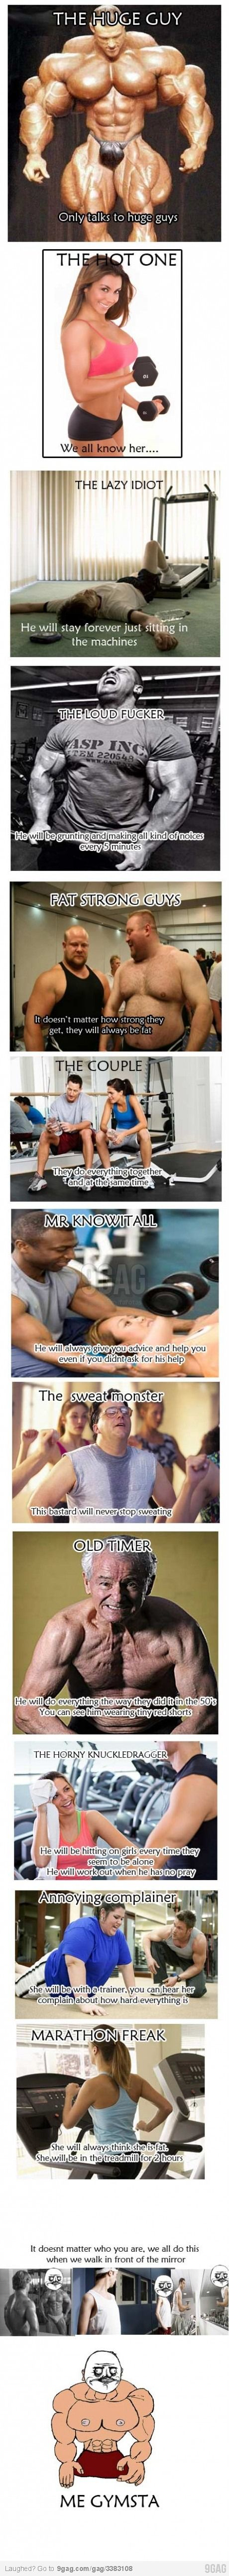 People You Tend To Find At The Gym (i'm the annoying complainer)